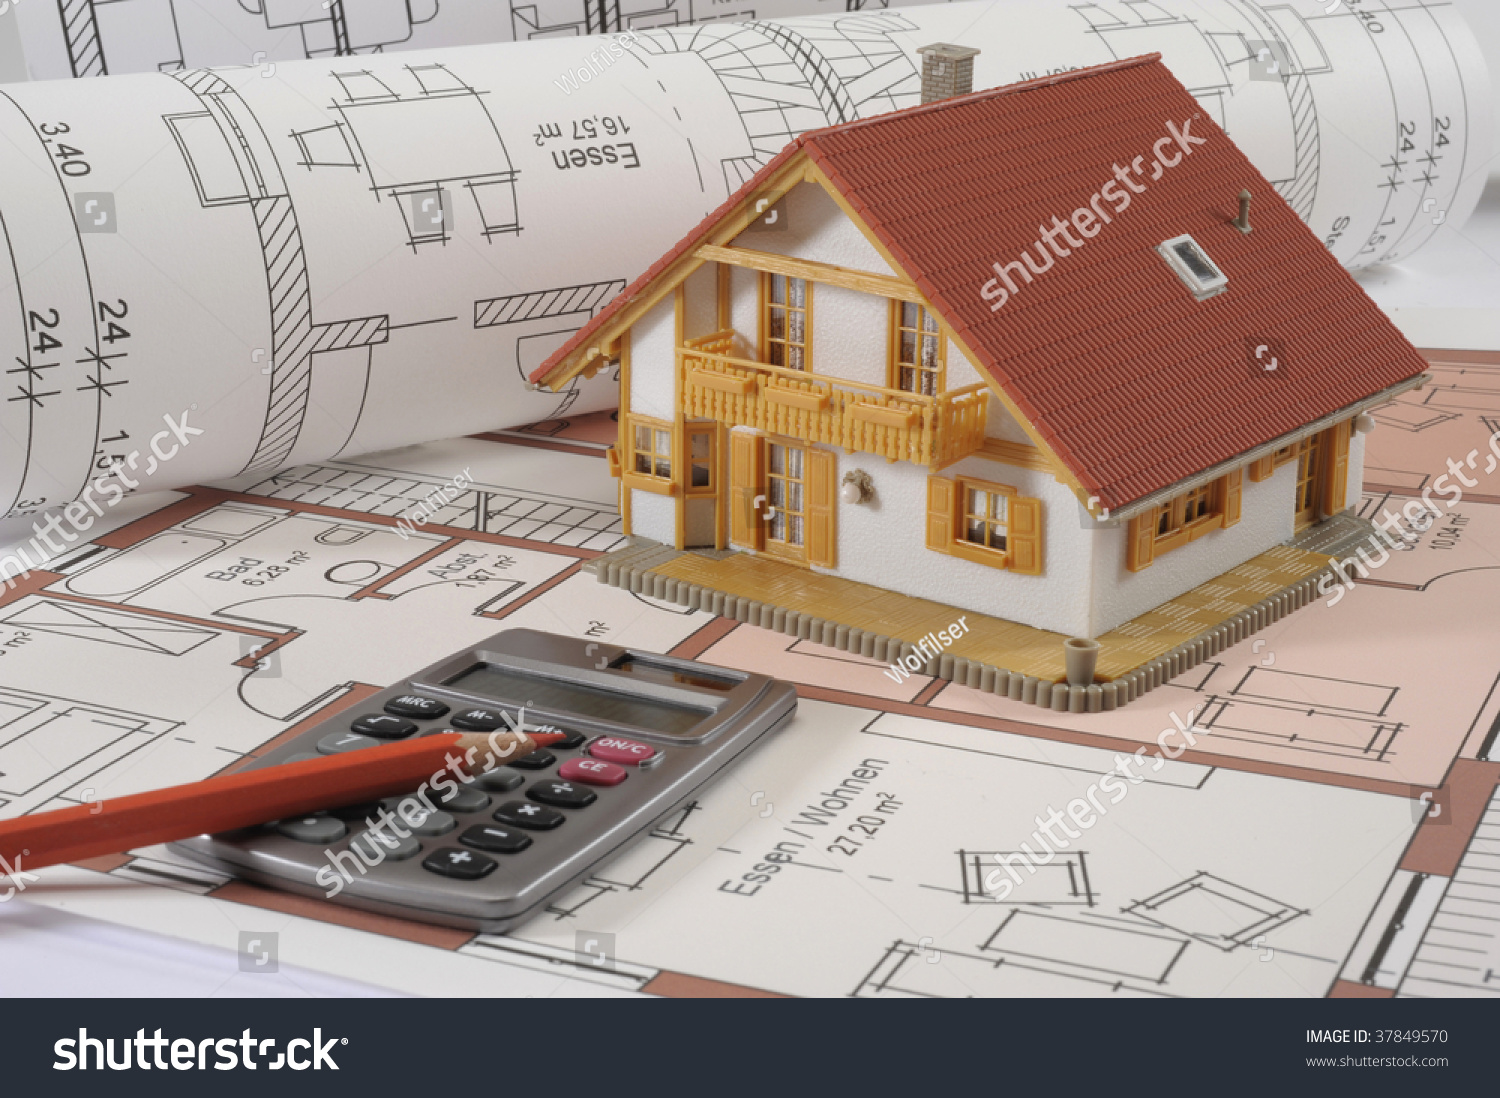 Model house and calculator on construction plan symbolic for Build new house calculator